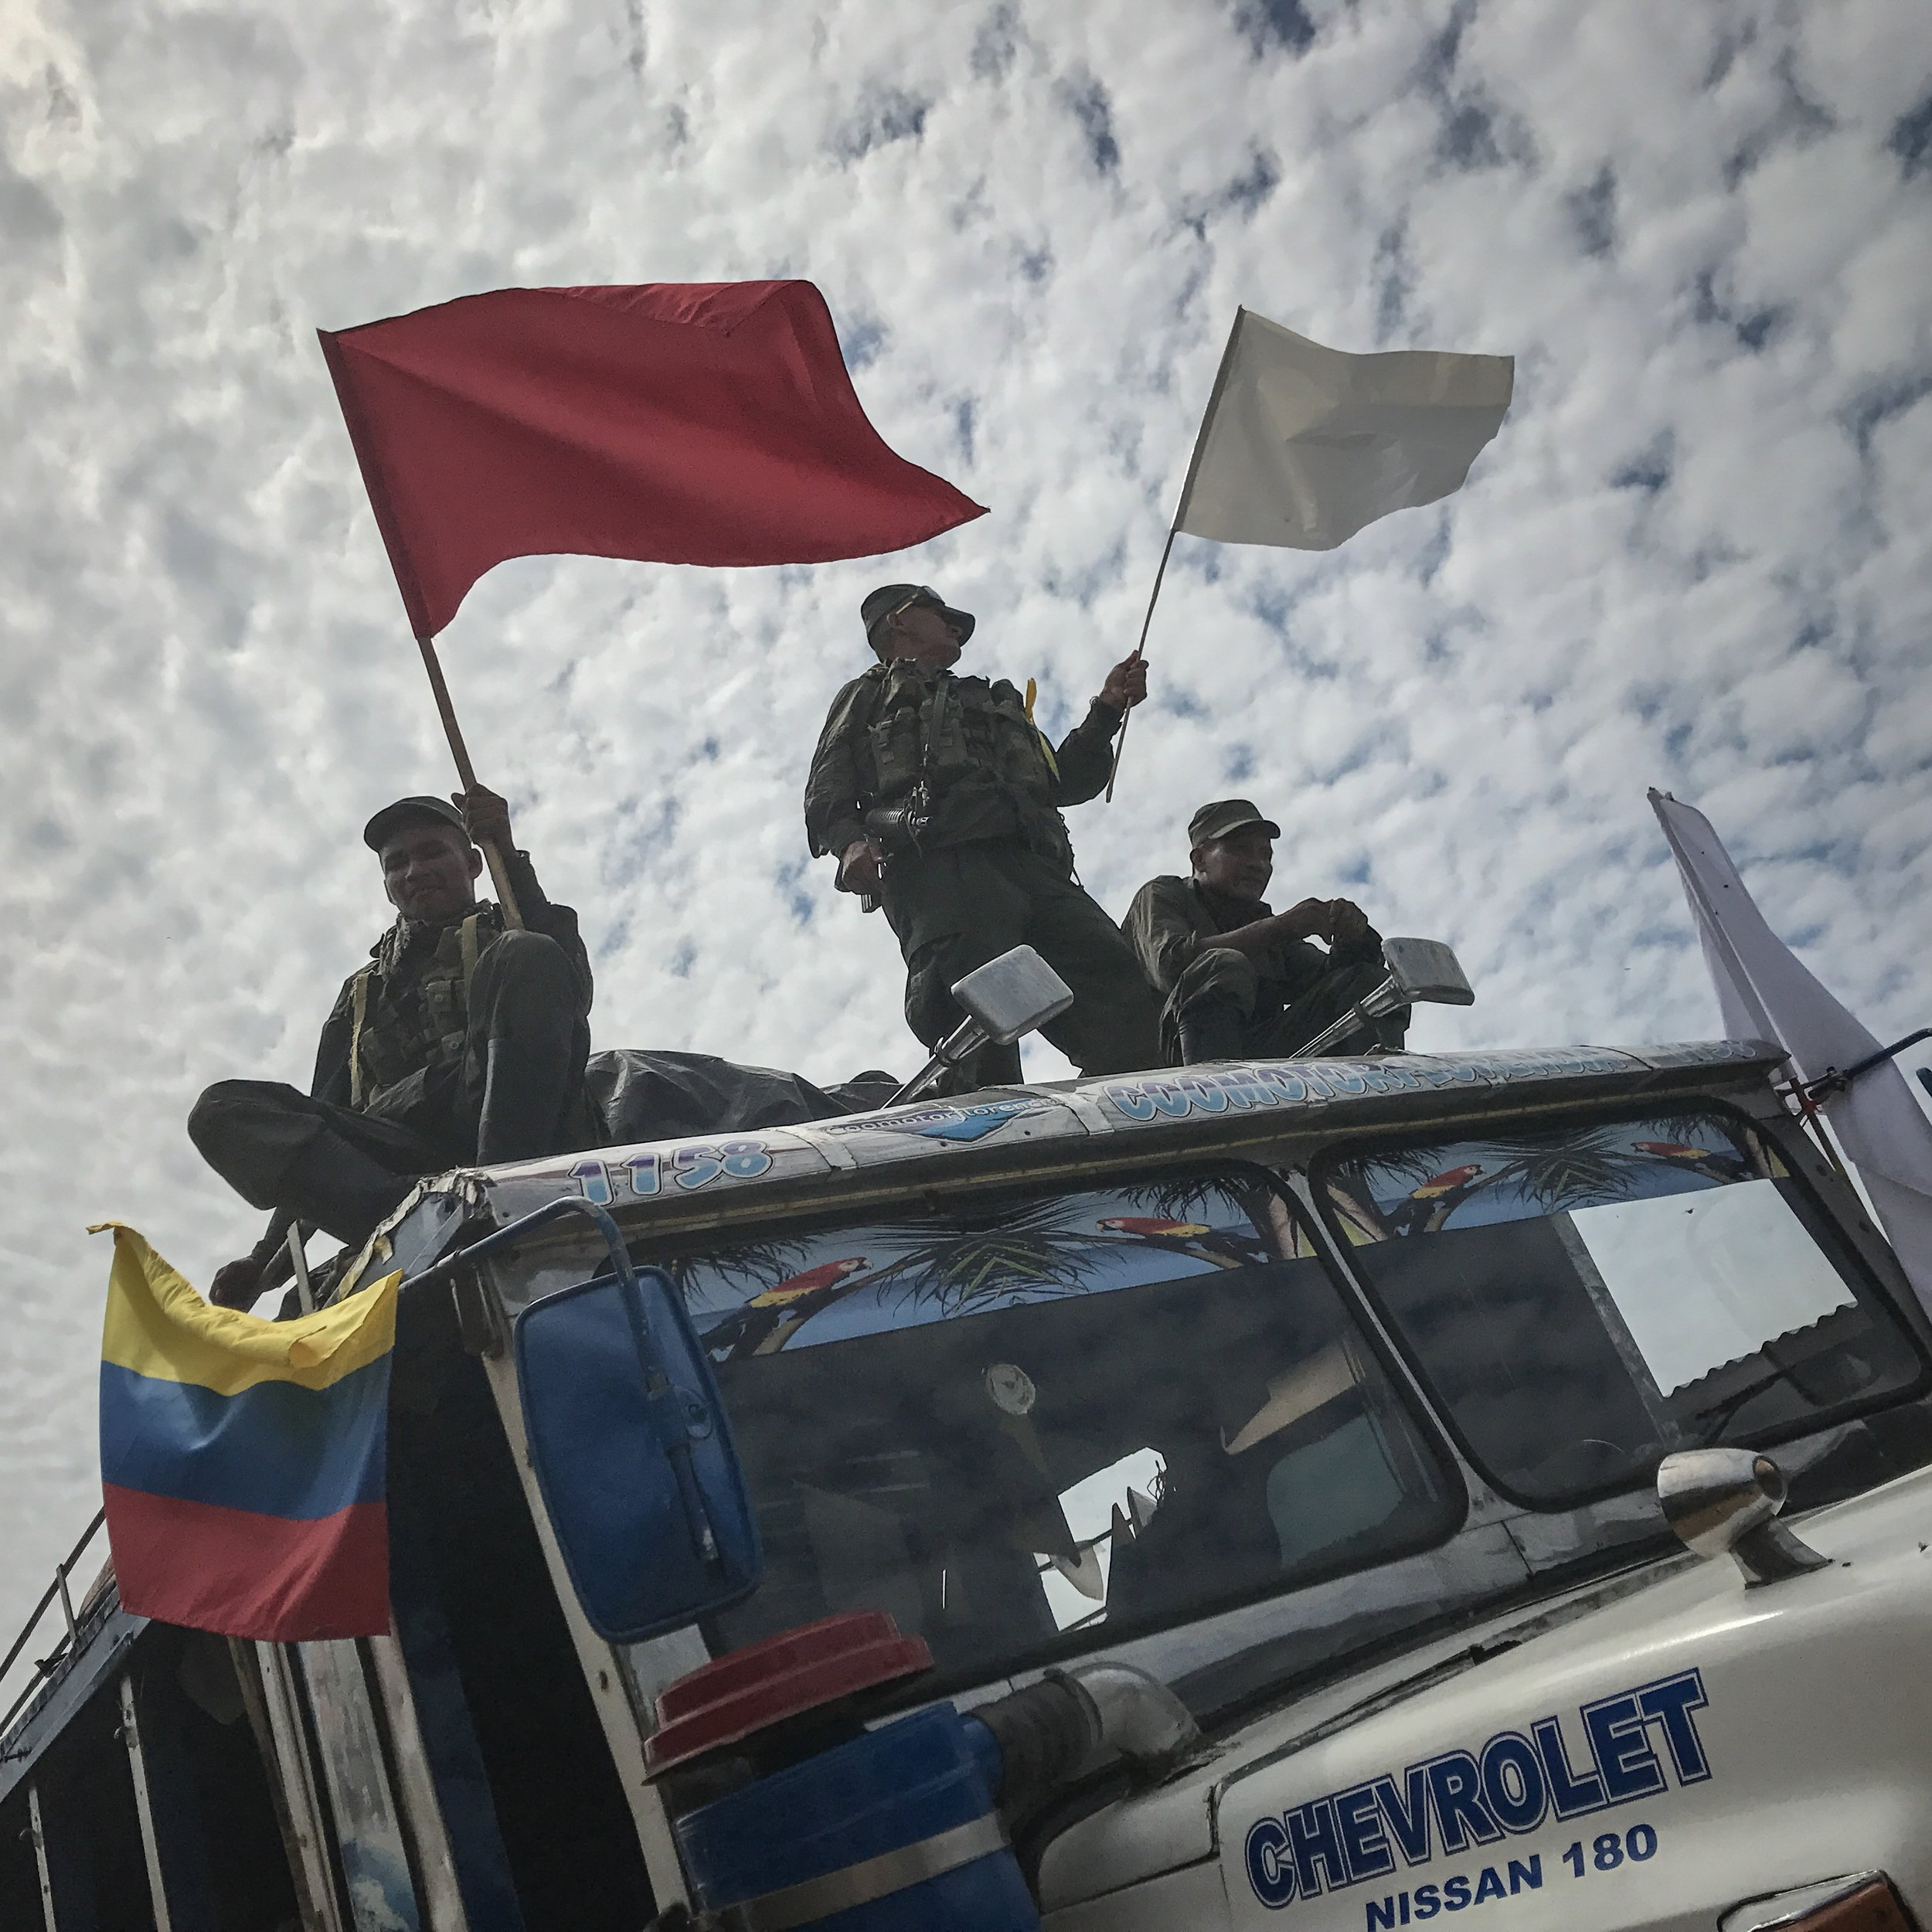 The 14th and 15th front begin the move to the zvtn Montañita. After this last movement, the 7000 FARC guerrilleros will begin their return to the social and political civil life.